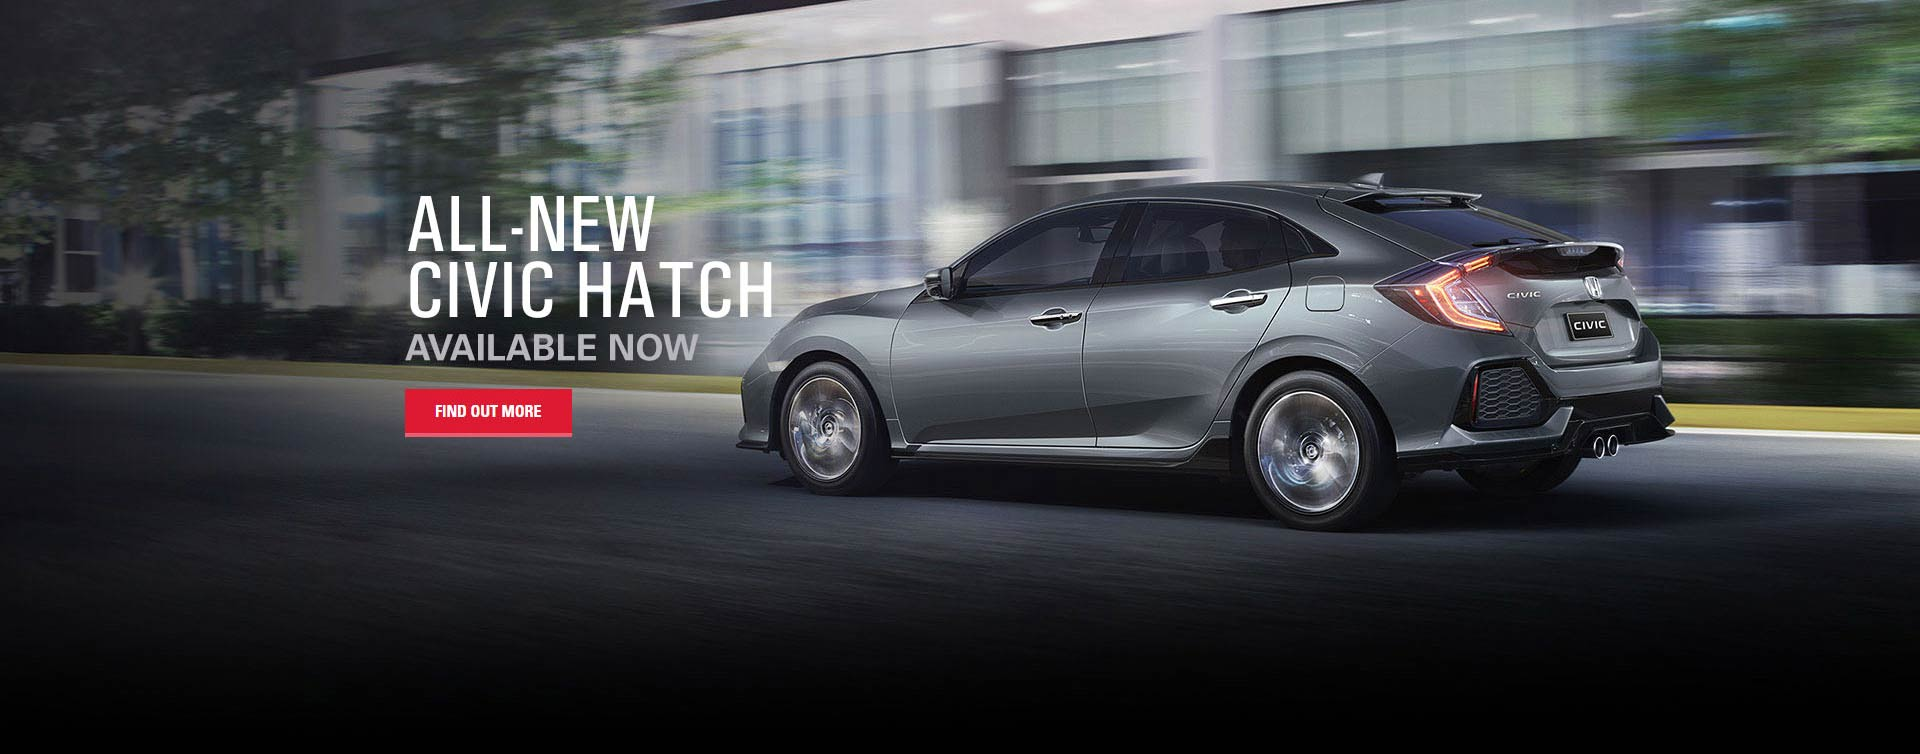 Civic Hatch Available Now